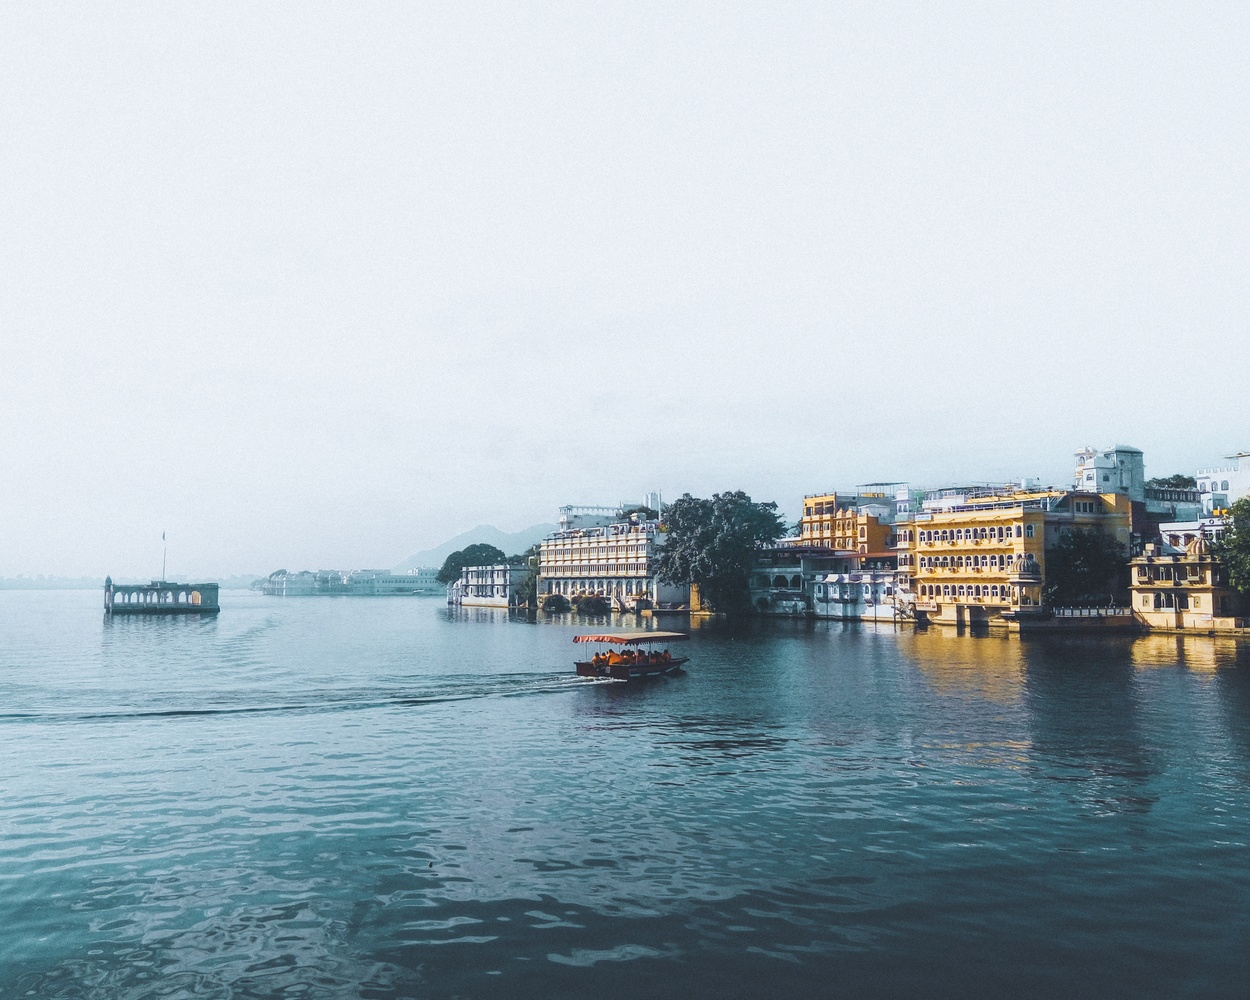 Udaipur : The city of Lakes by Bhupendra Ranawat